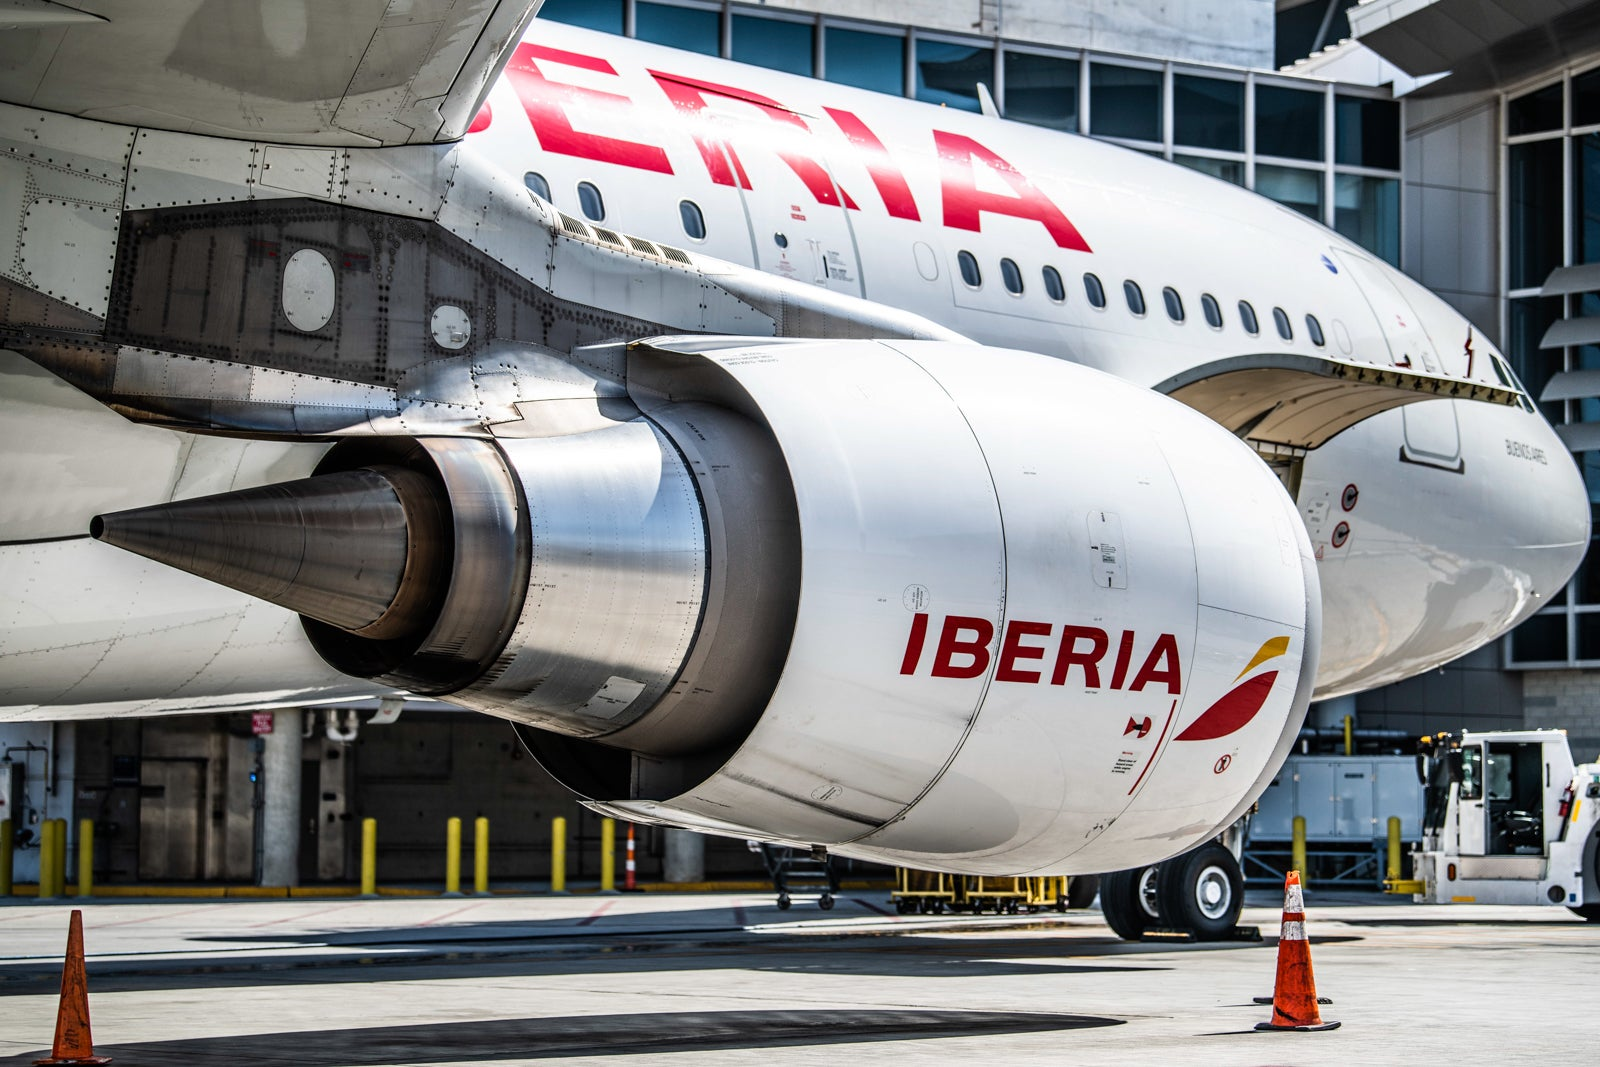 Iberia-A330-in-Los-Angeles-AIrport-LAX